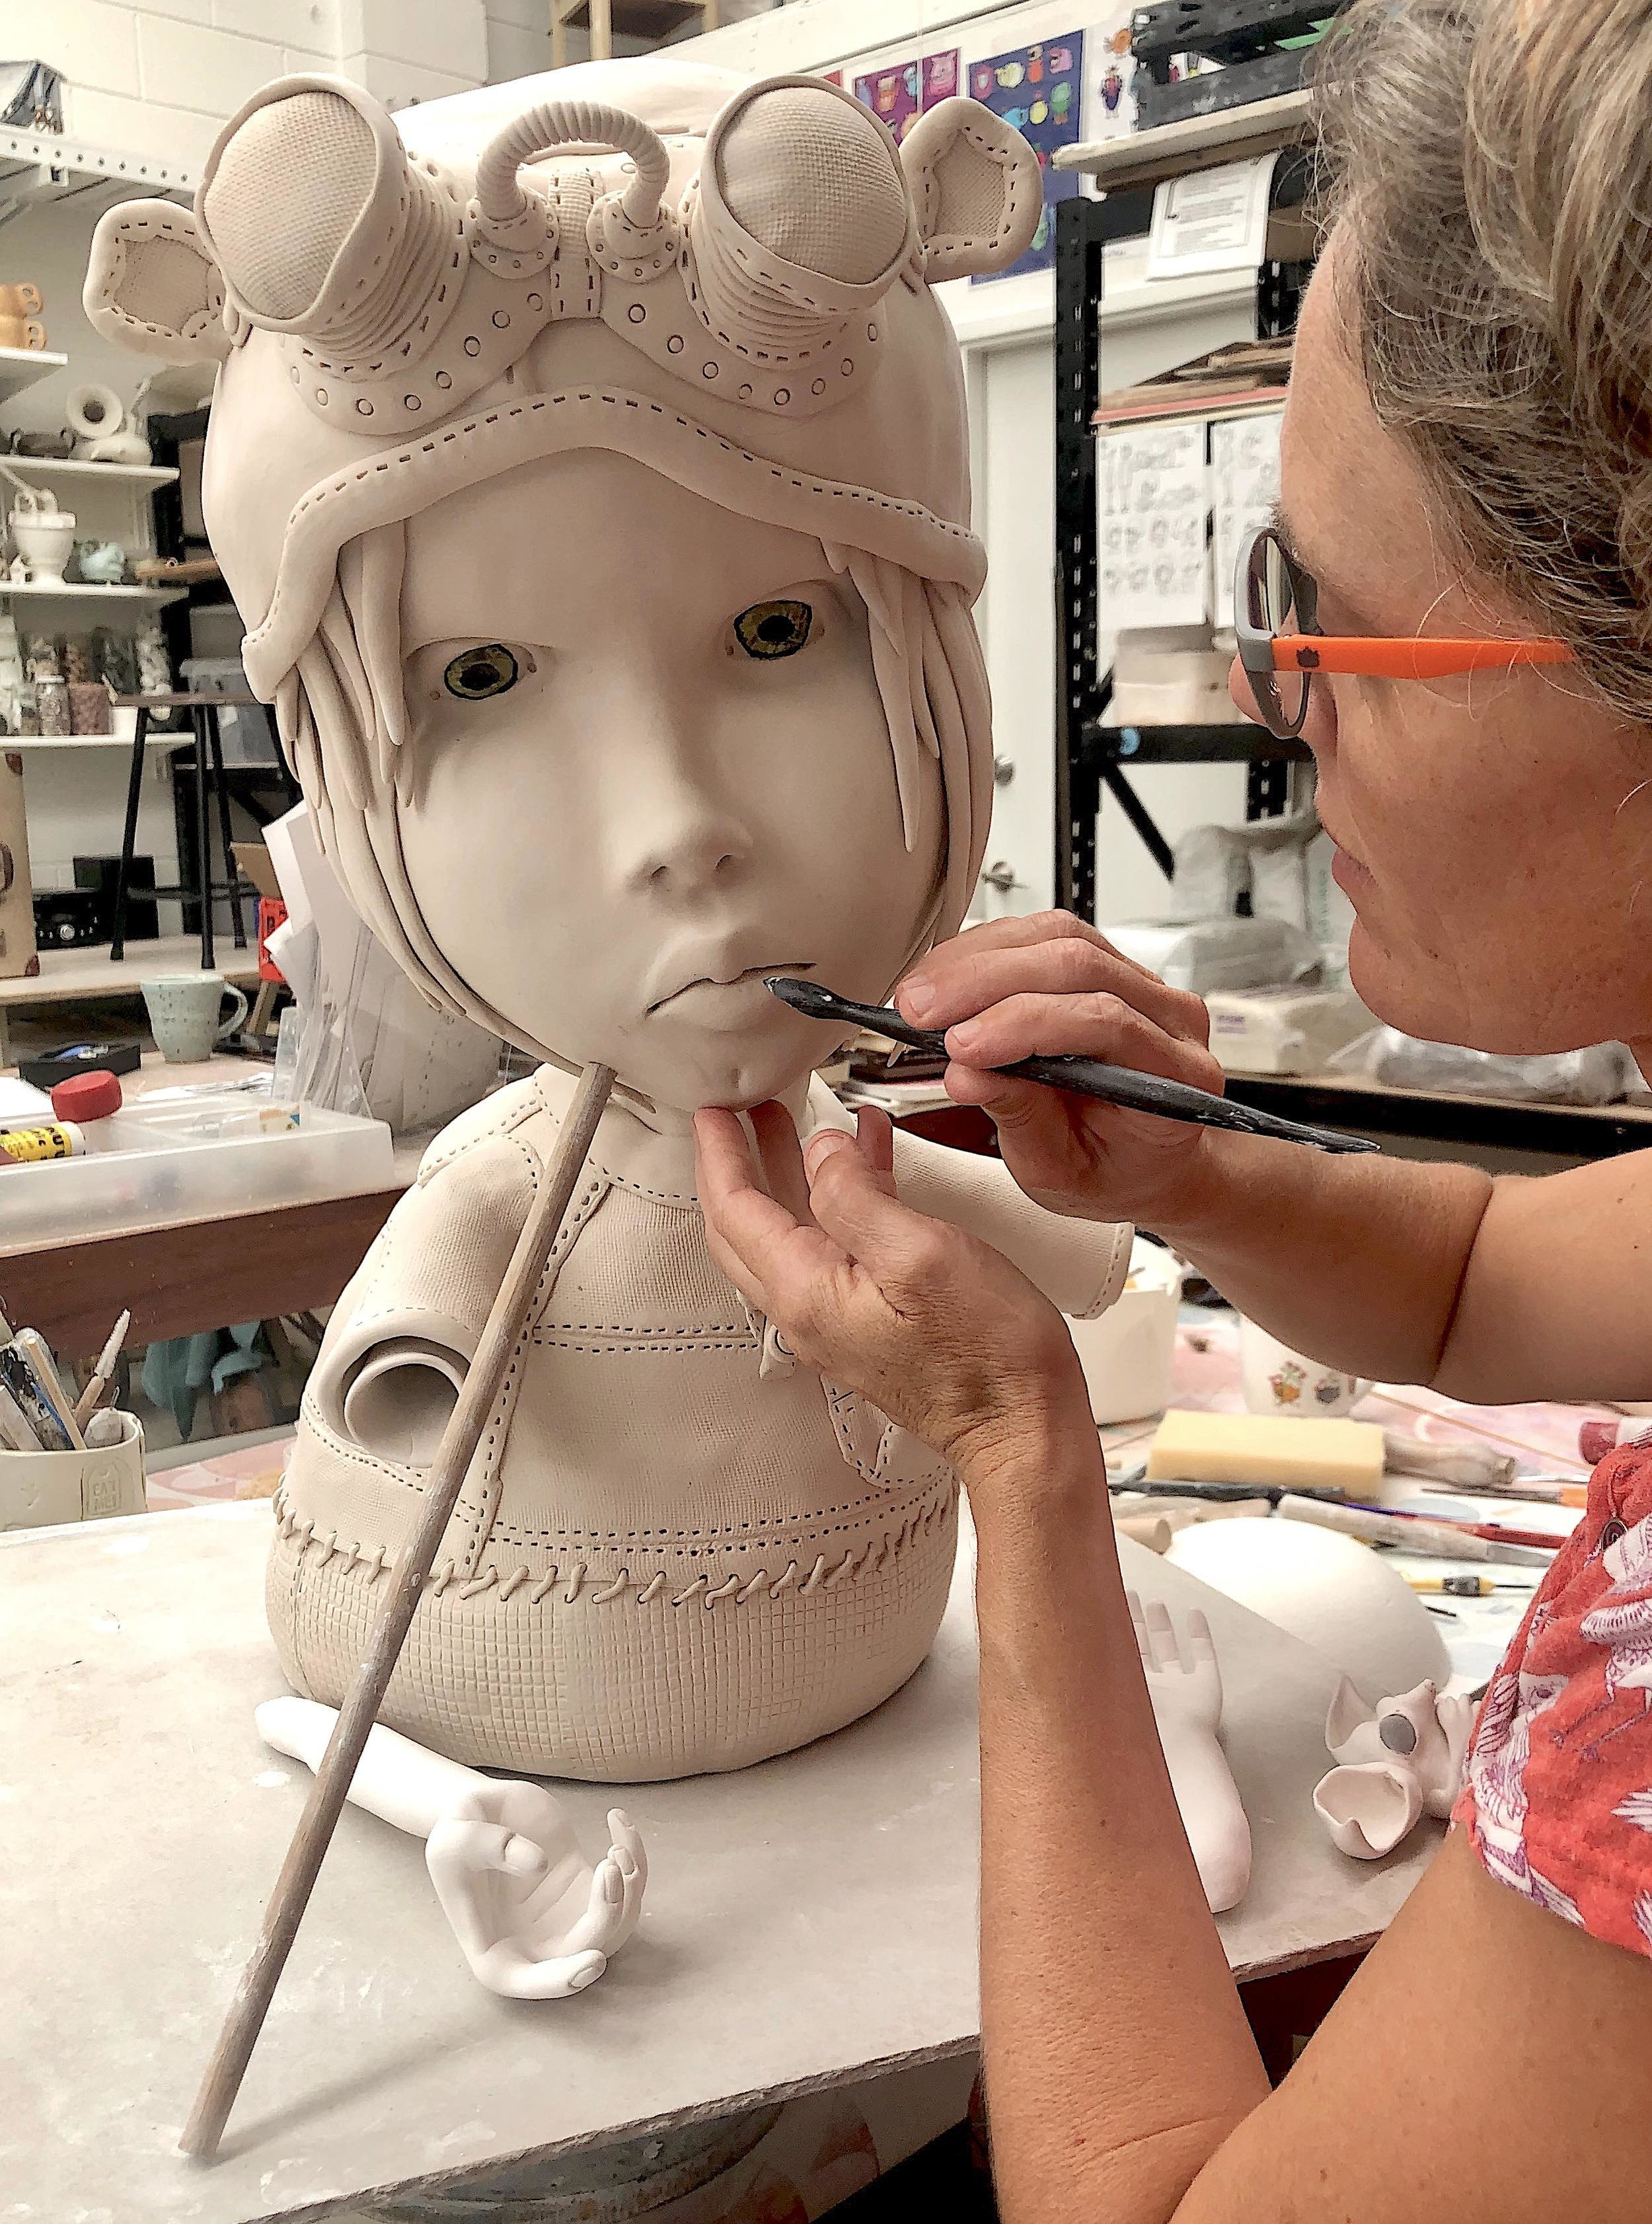 In November 2018 I had the great privilege to work with Internationally esteemed figurative sculptor Cristina Cordova  at Gaya Ceramics centre in Ubud Bali. I am so grateful for all the tricks and advice she generously shared.